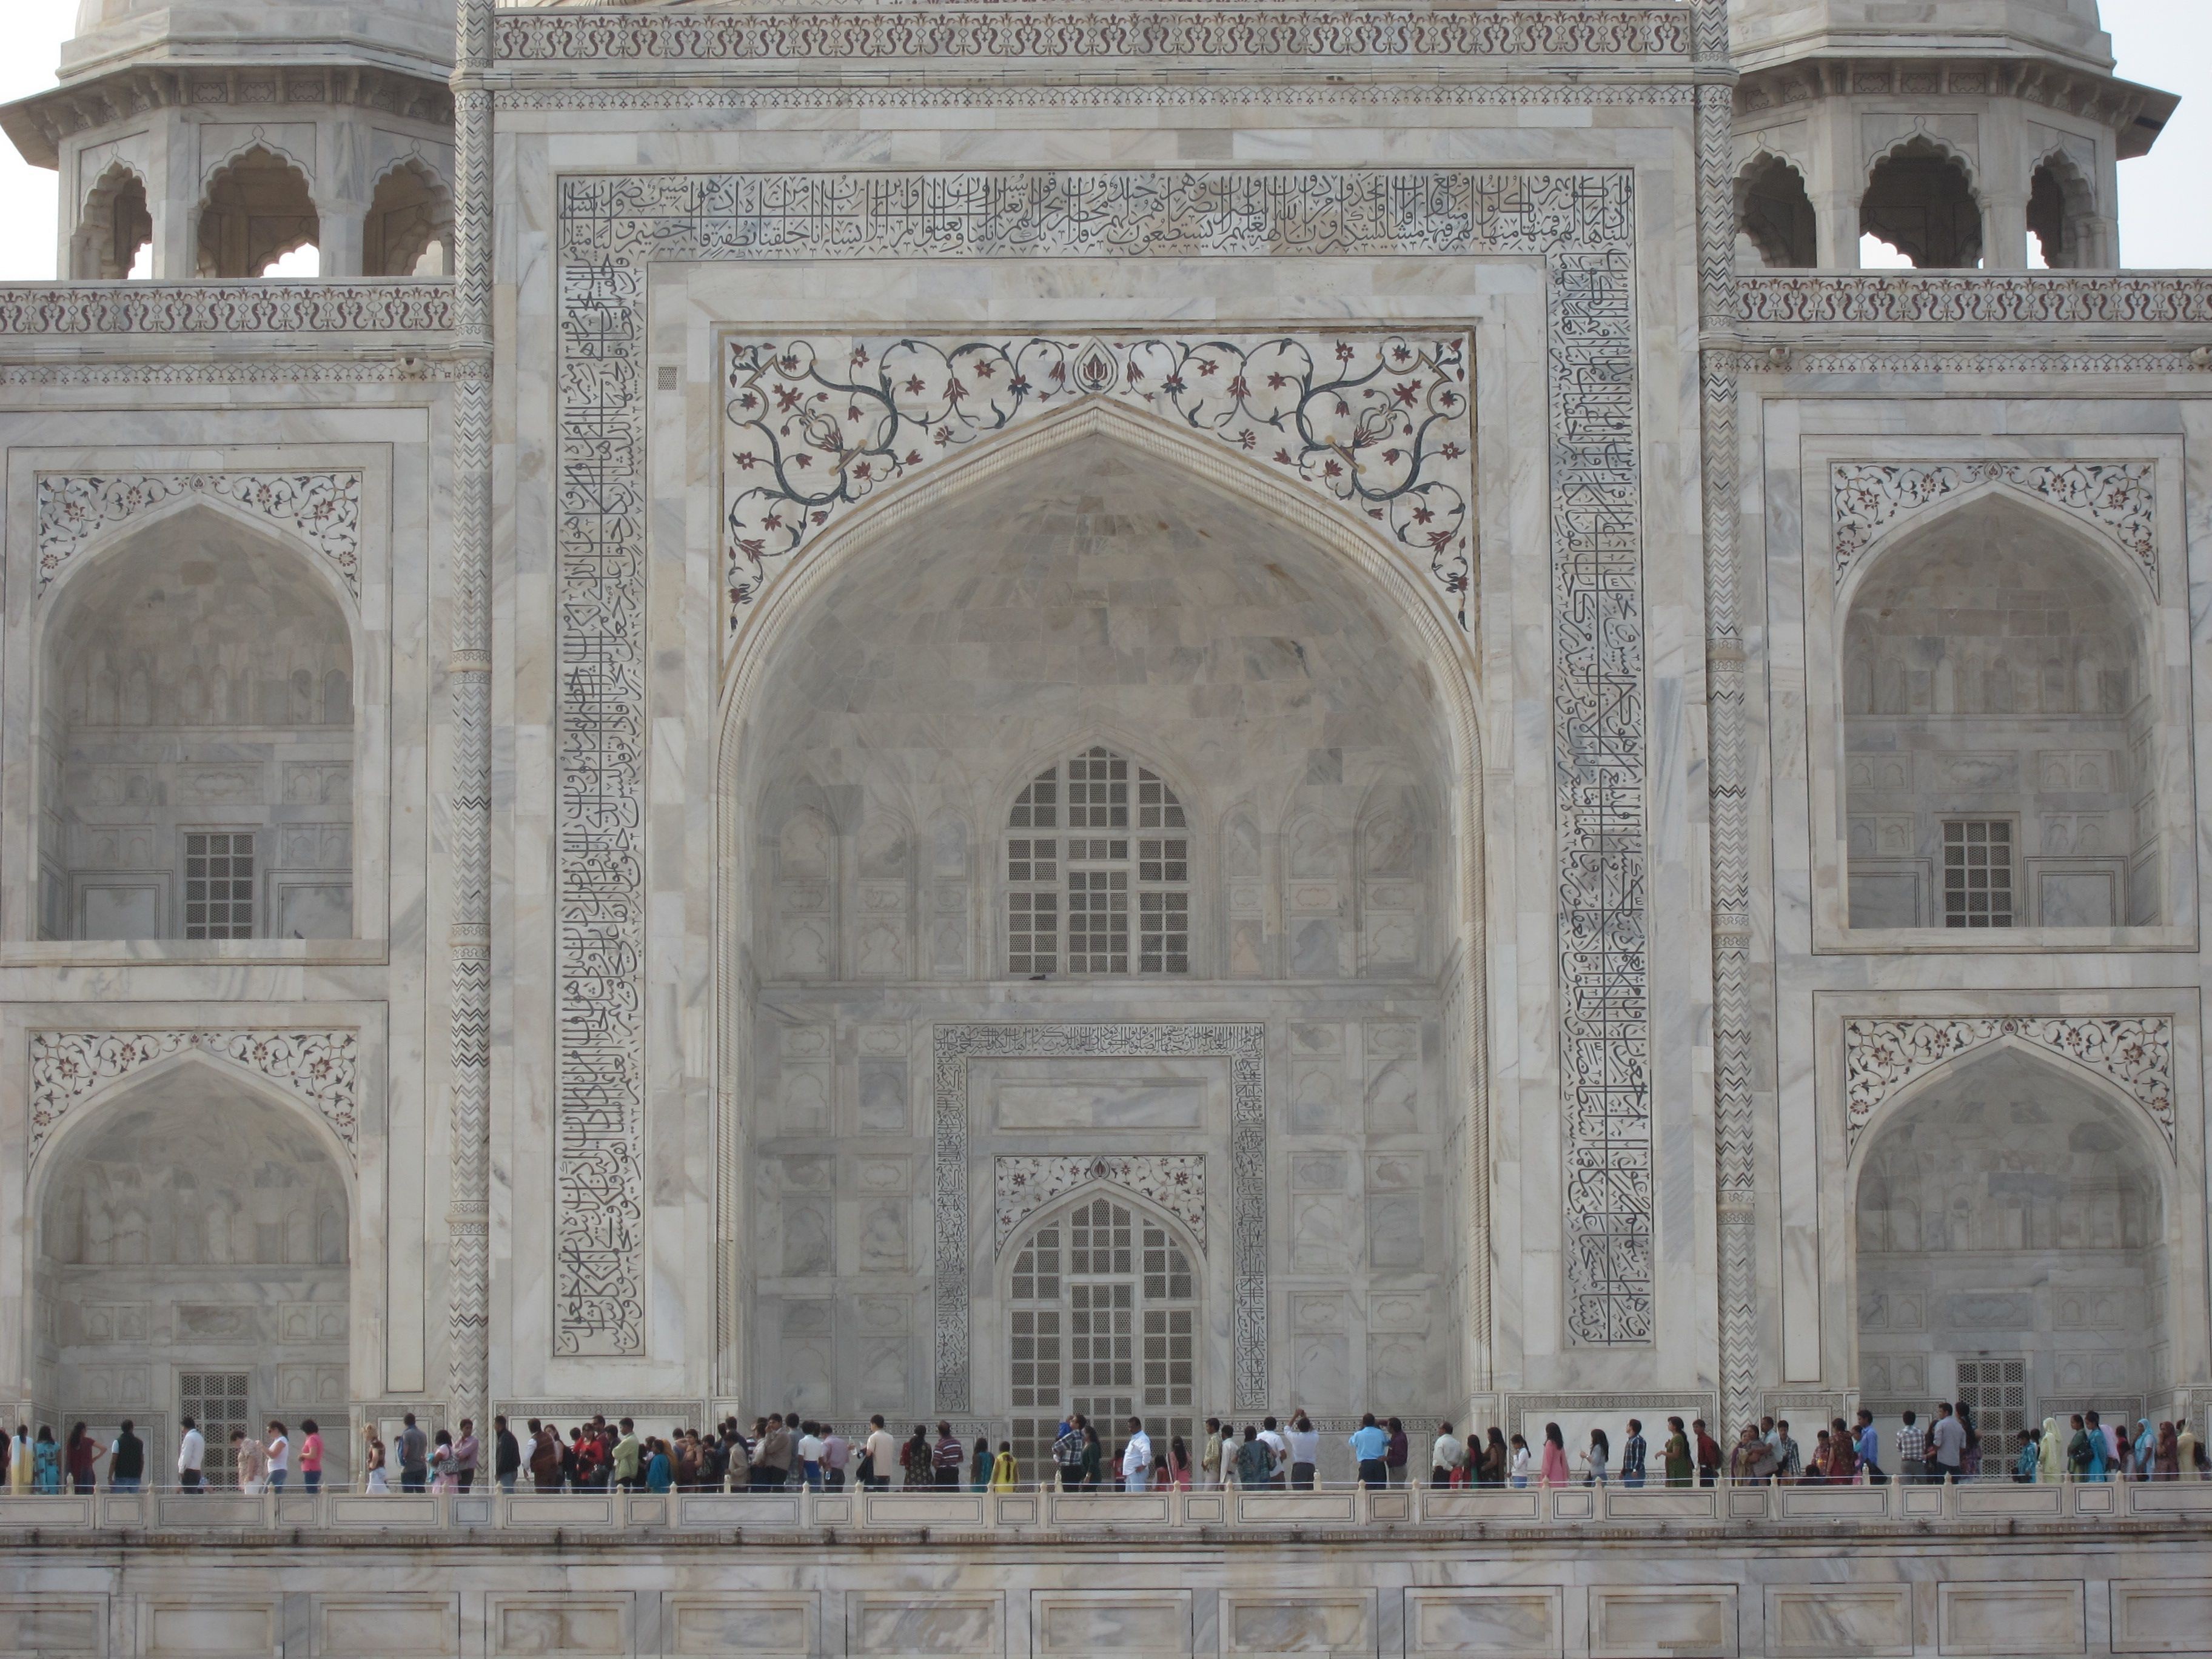 Pictures of the inside of taj mahal 3x6 Gray Glossy Crackle Glazed Subway Ceramic Tile